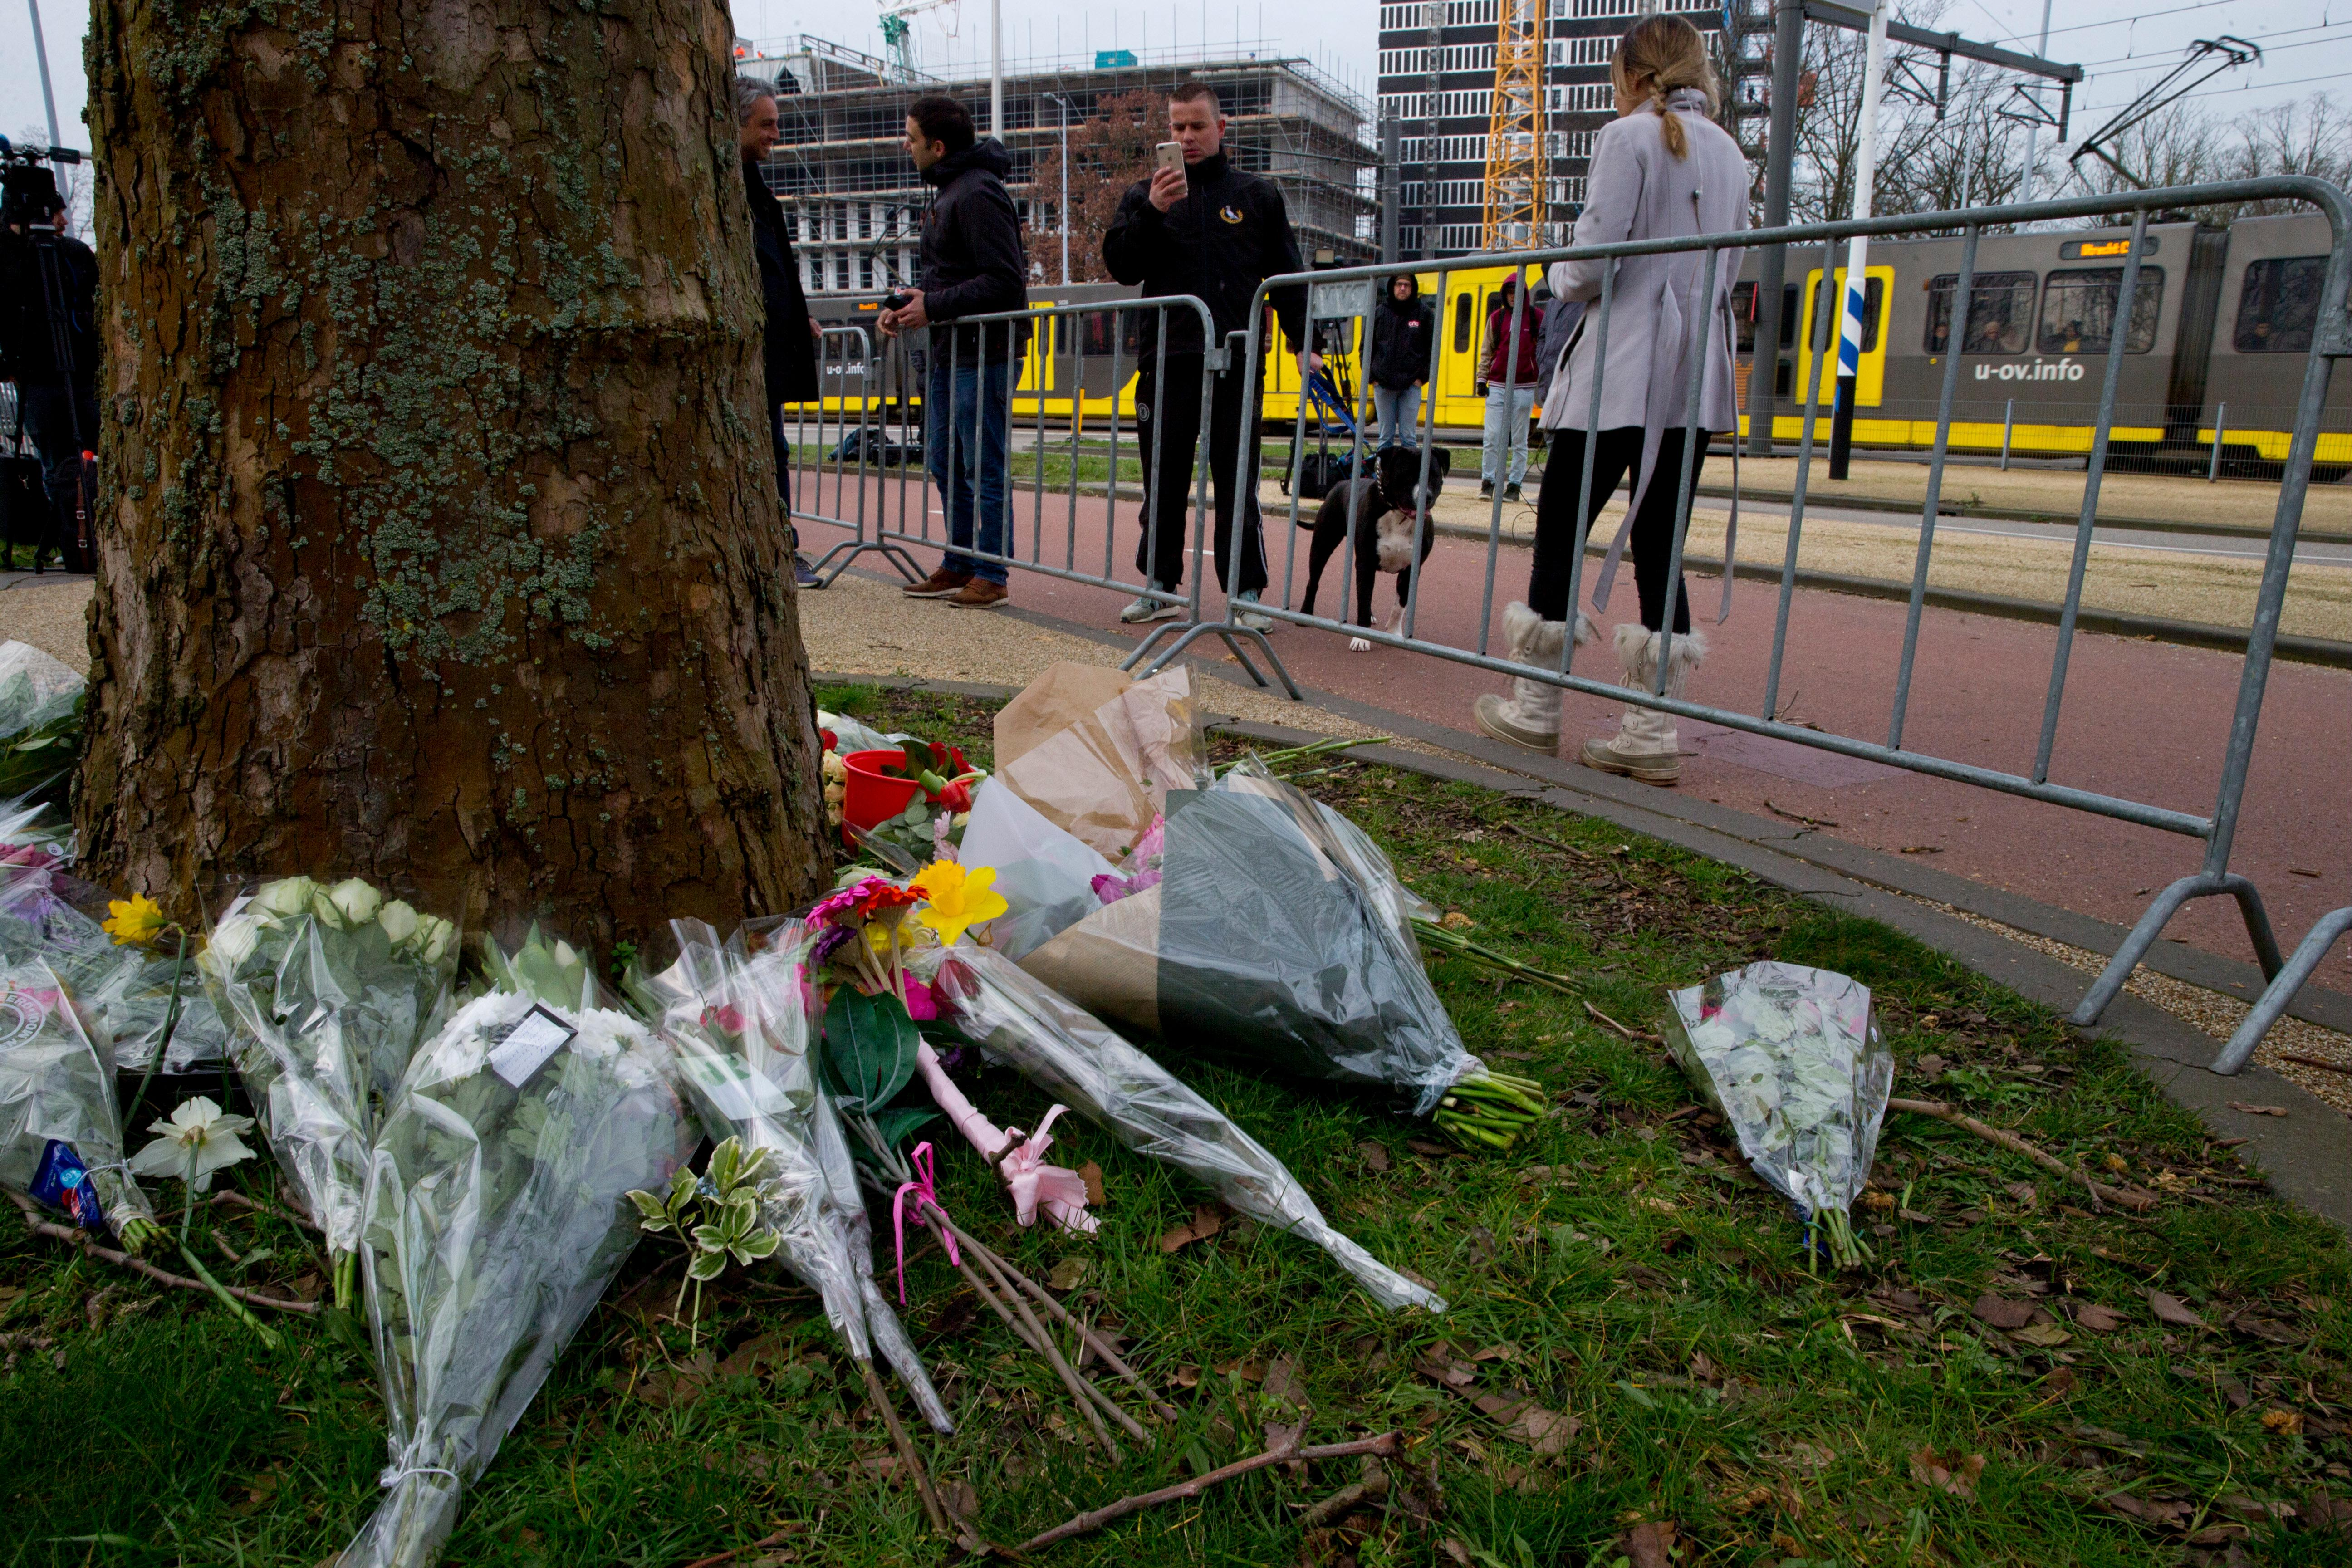 A tram passes in the background as flowers are seen in the foreground near the site of a shooting incident in a tram in Utrecht, Netherlands, Tuesday, March 19, 2019. (AP Photo/Peter Dejong)